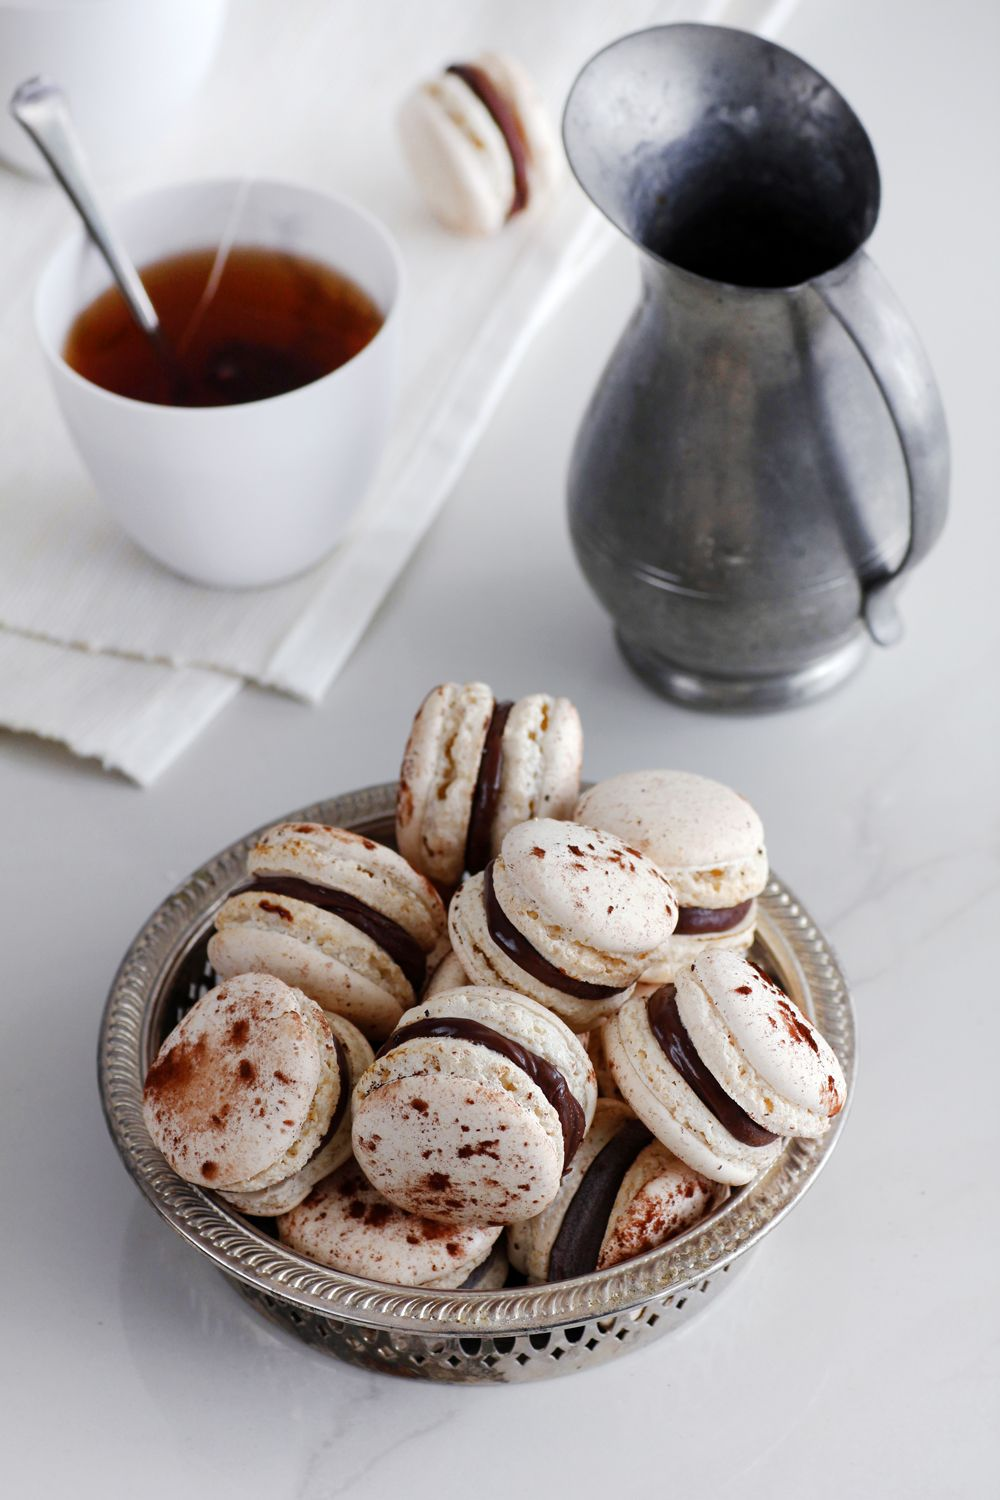 Earl Grey Chocolate Macarons